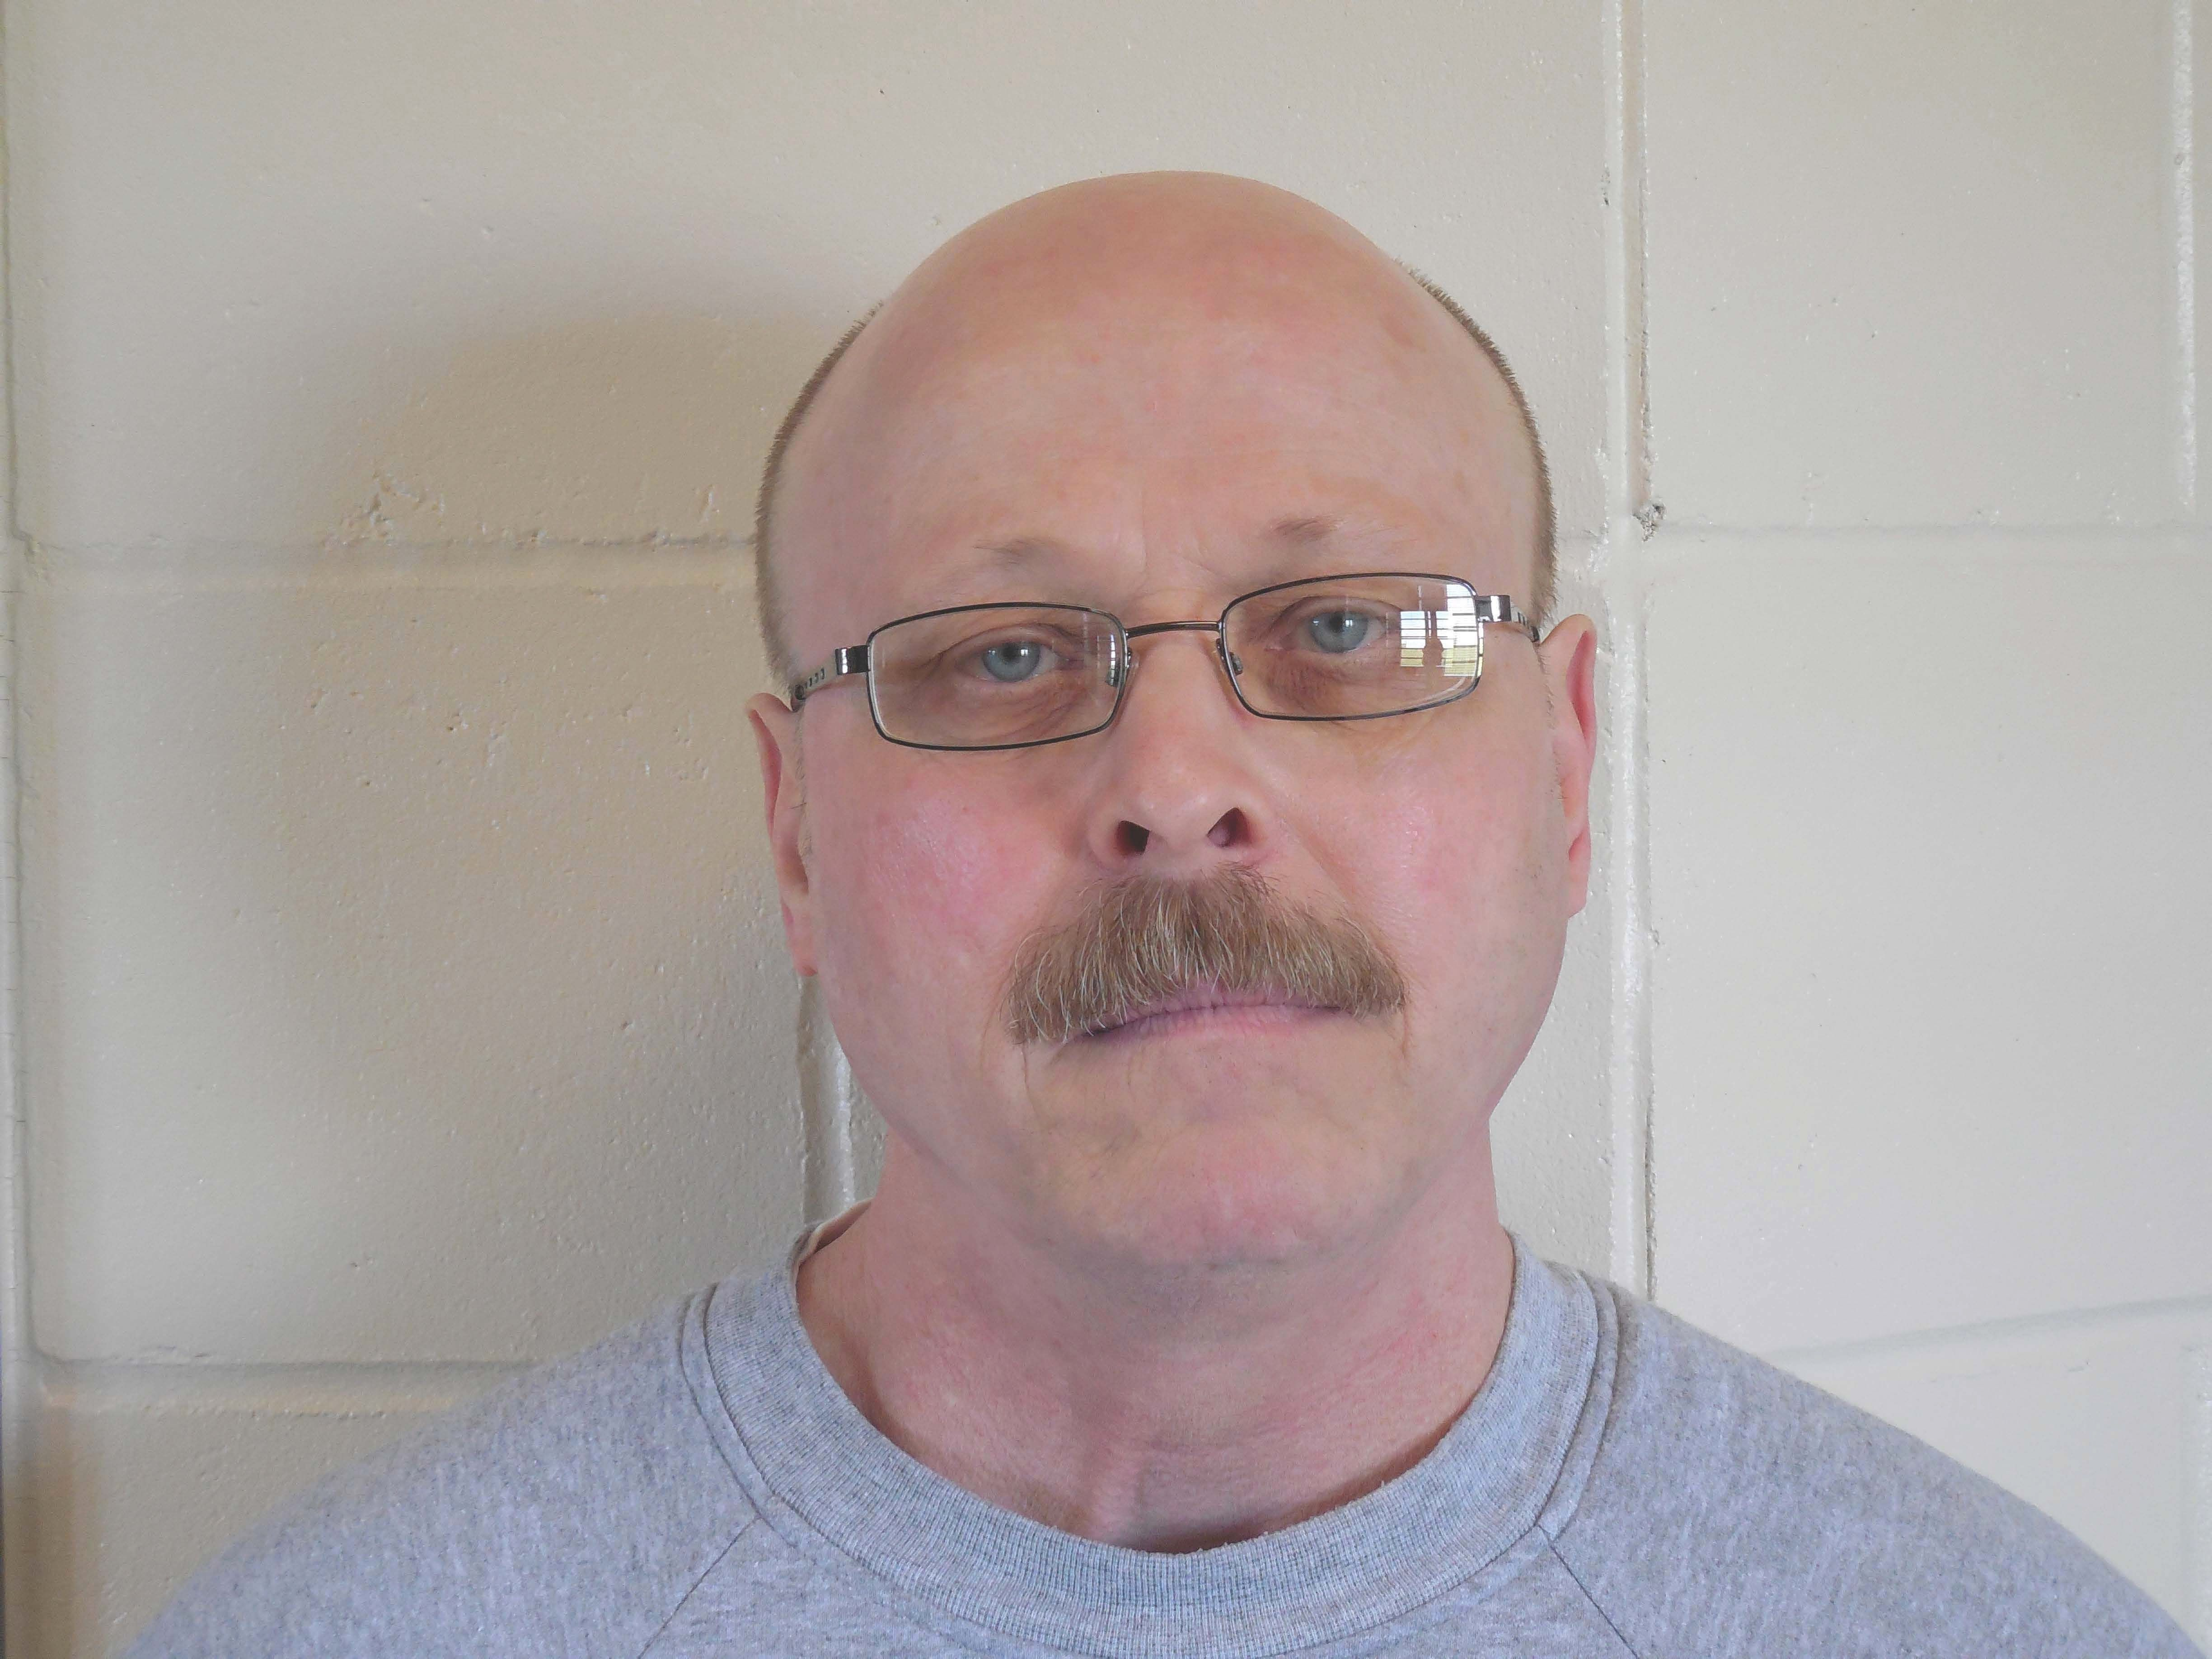 Nebraska executes first prison inmate since 1997